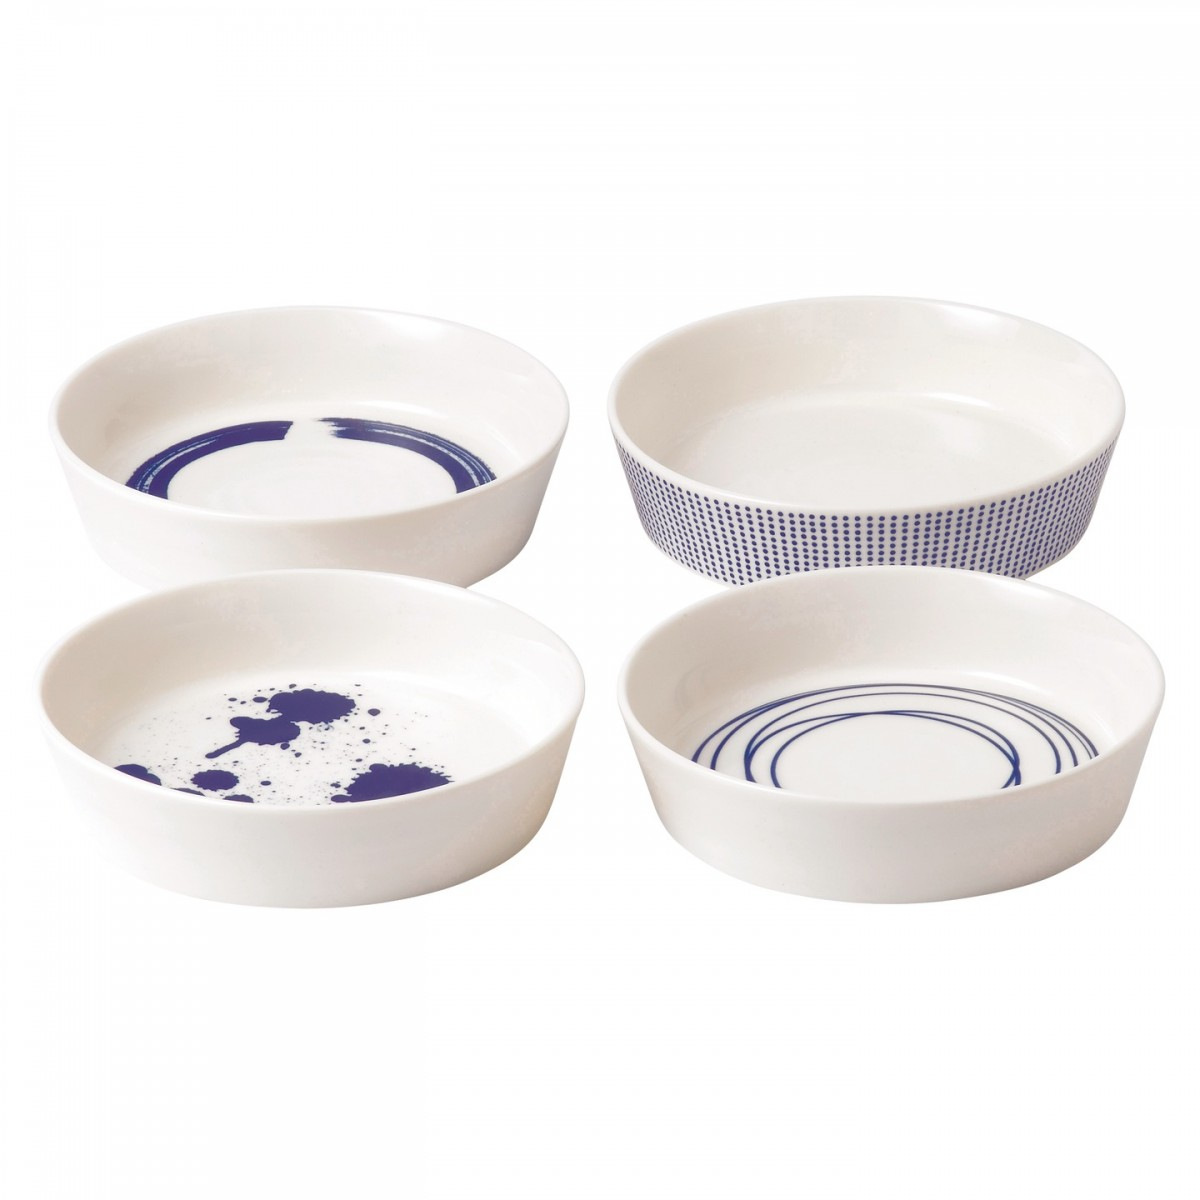 Pacific Round Serving Dishes, Set of 4 - Royal Doulton | US